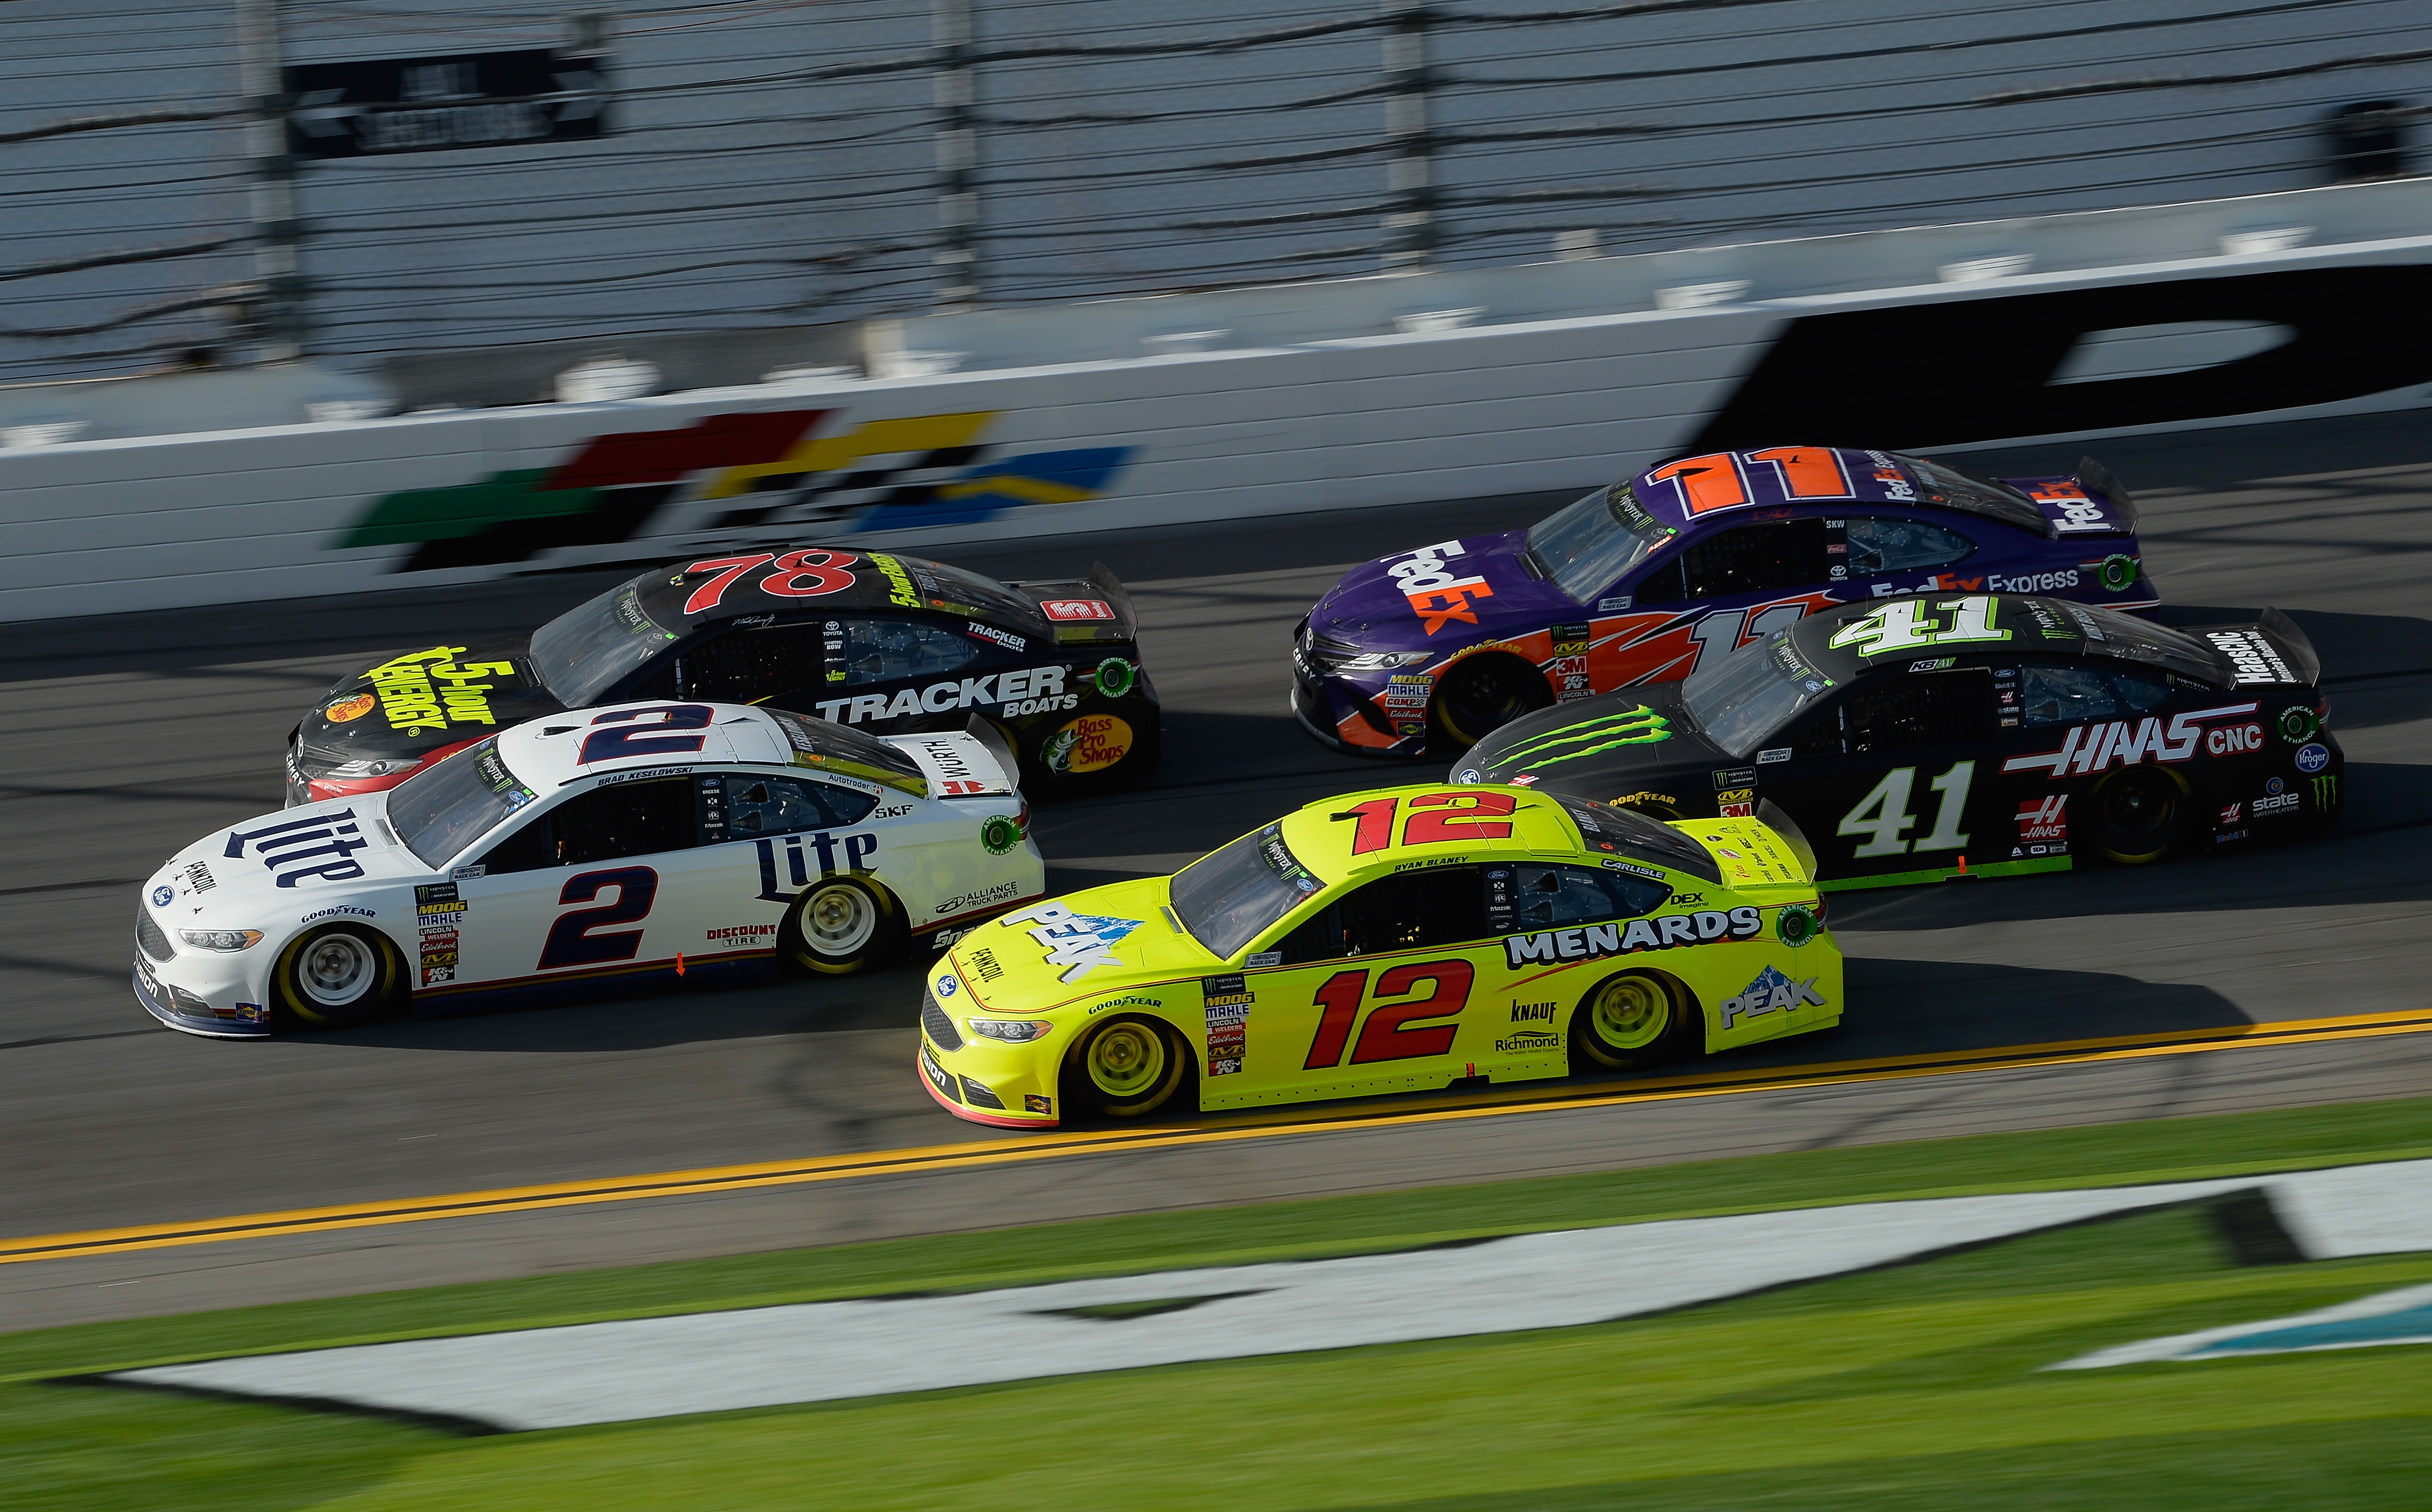 Next generation takes center stage at Daytona